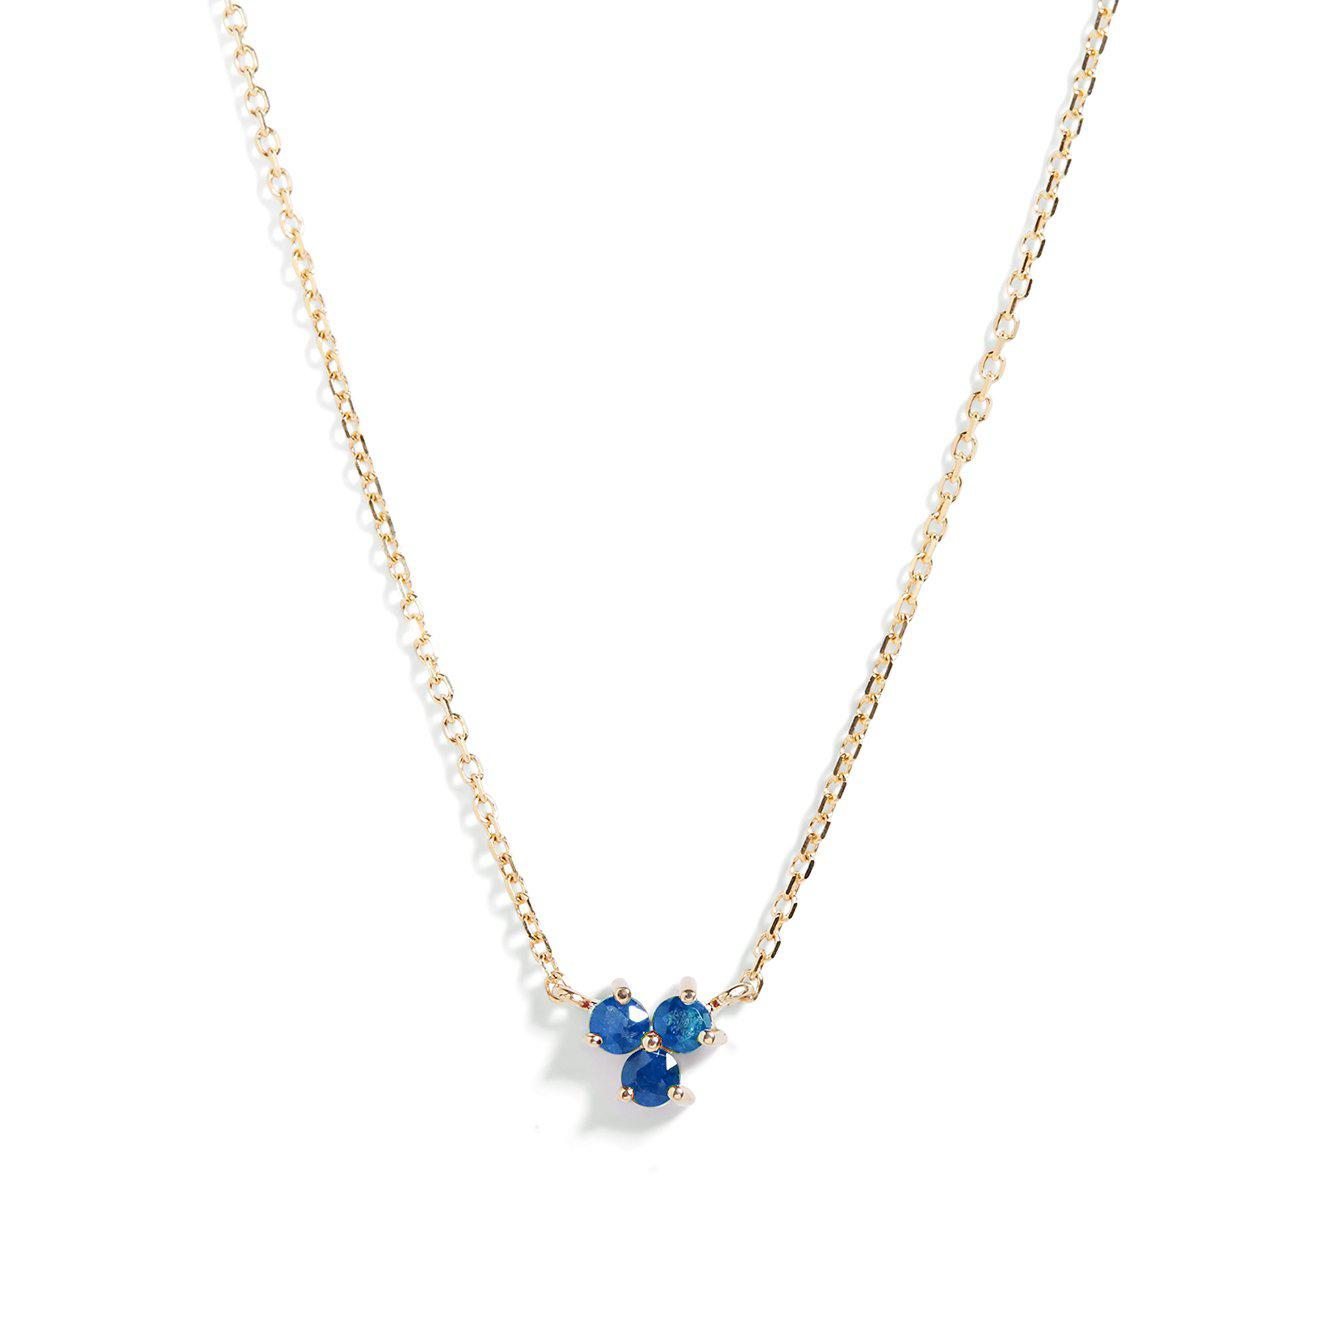 The Trio Tanzanite Necklace in 9kt Gold